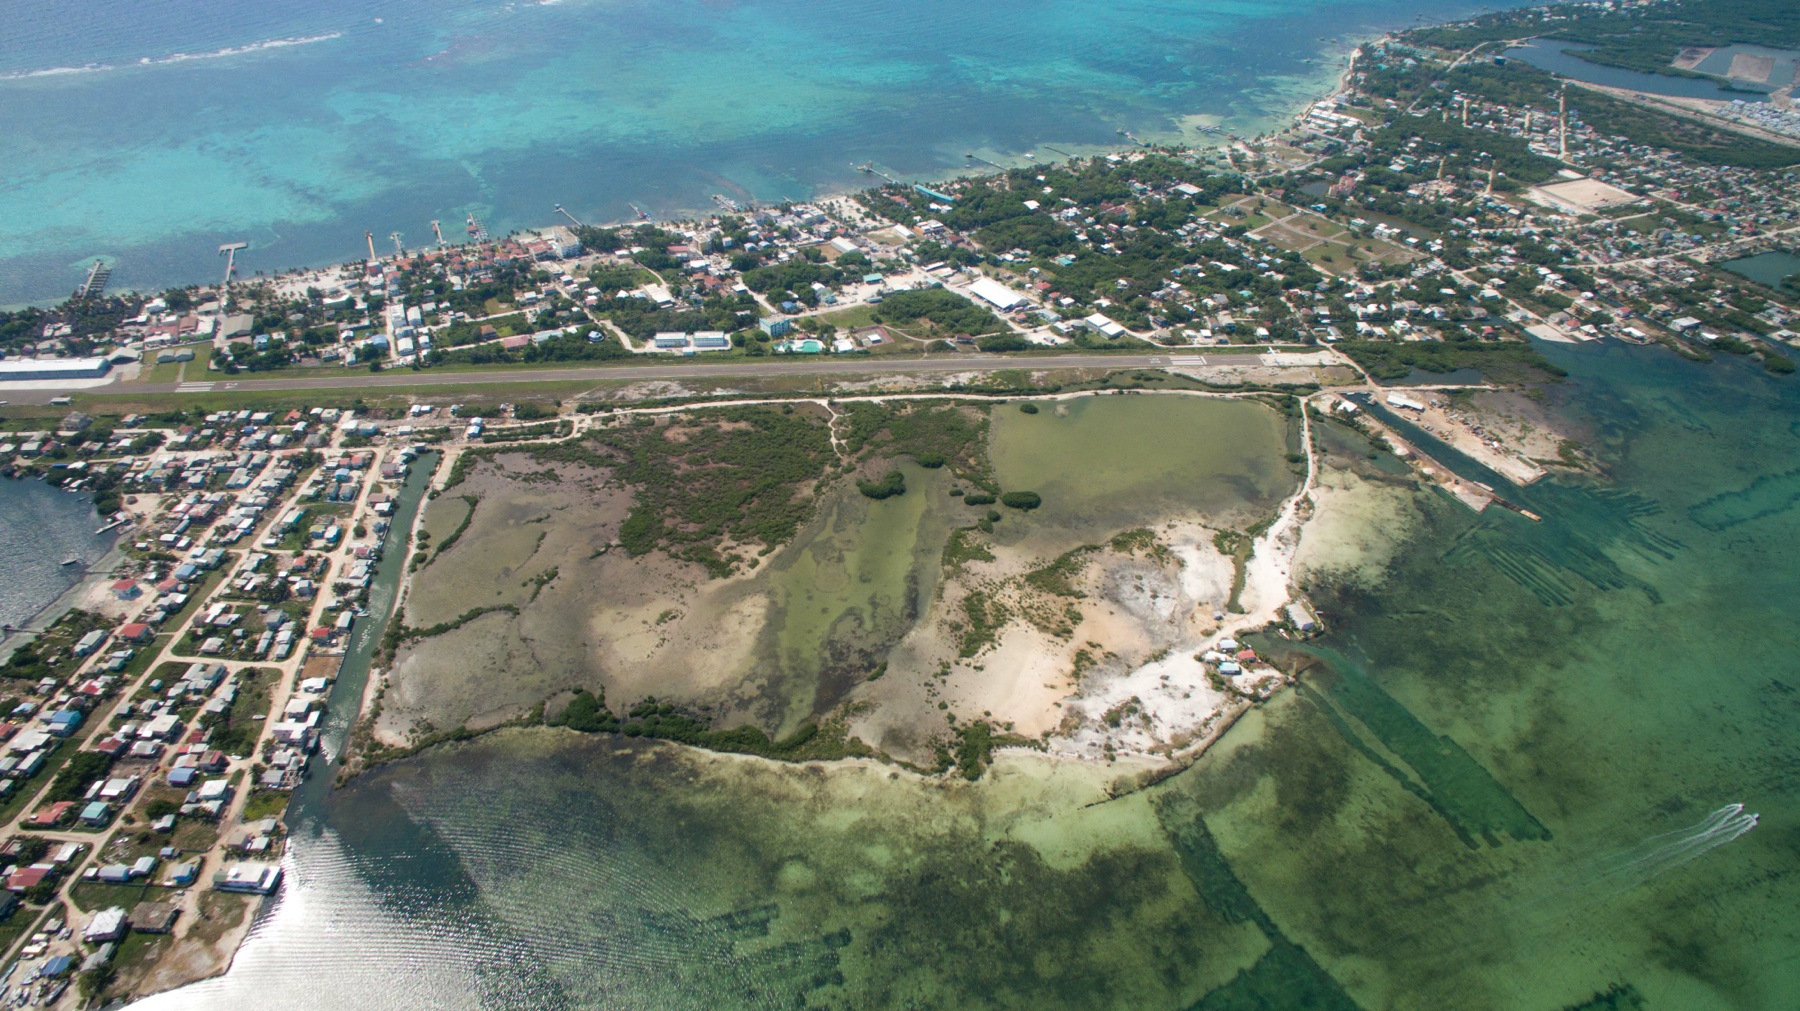 Land for Sale at 80 Acres Available in Prime Location in San Pedro Town San Pedro Town, Ambergris Caye Belize